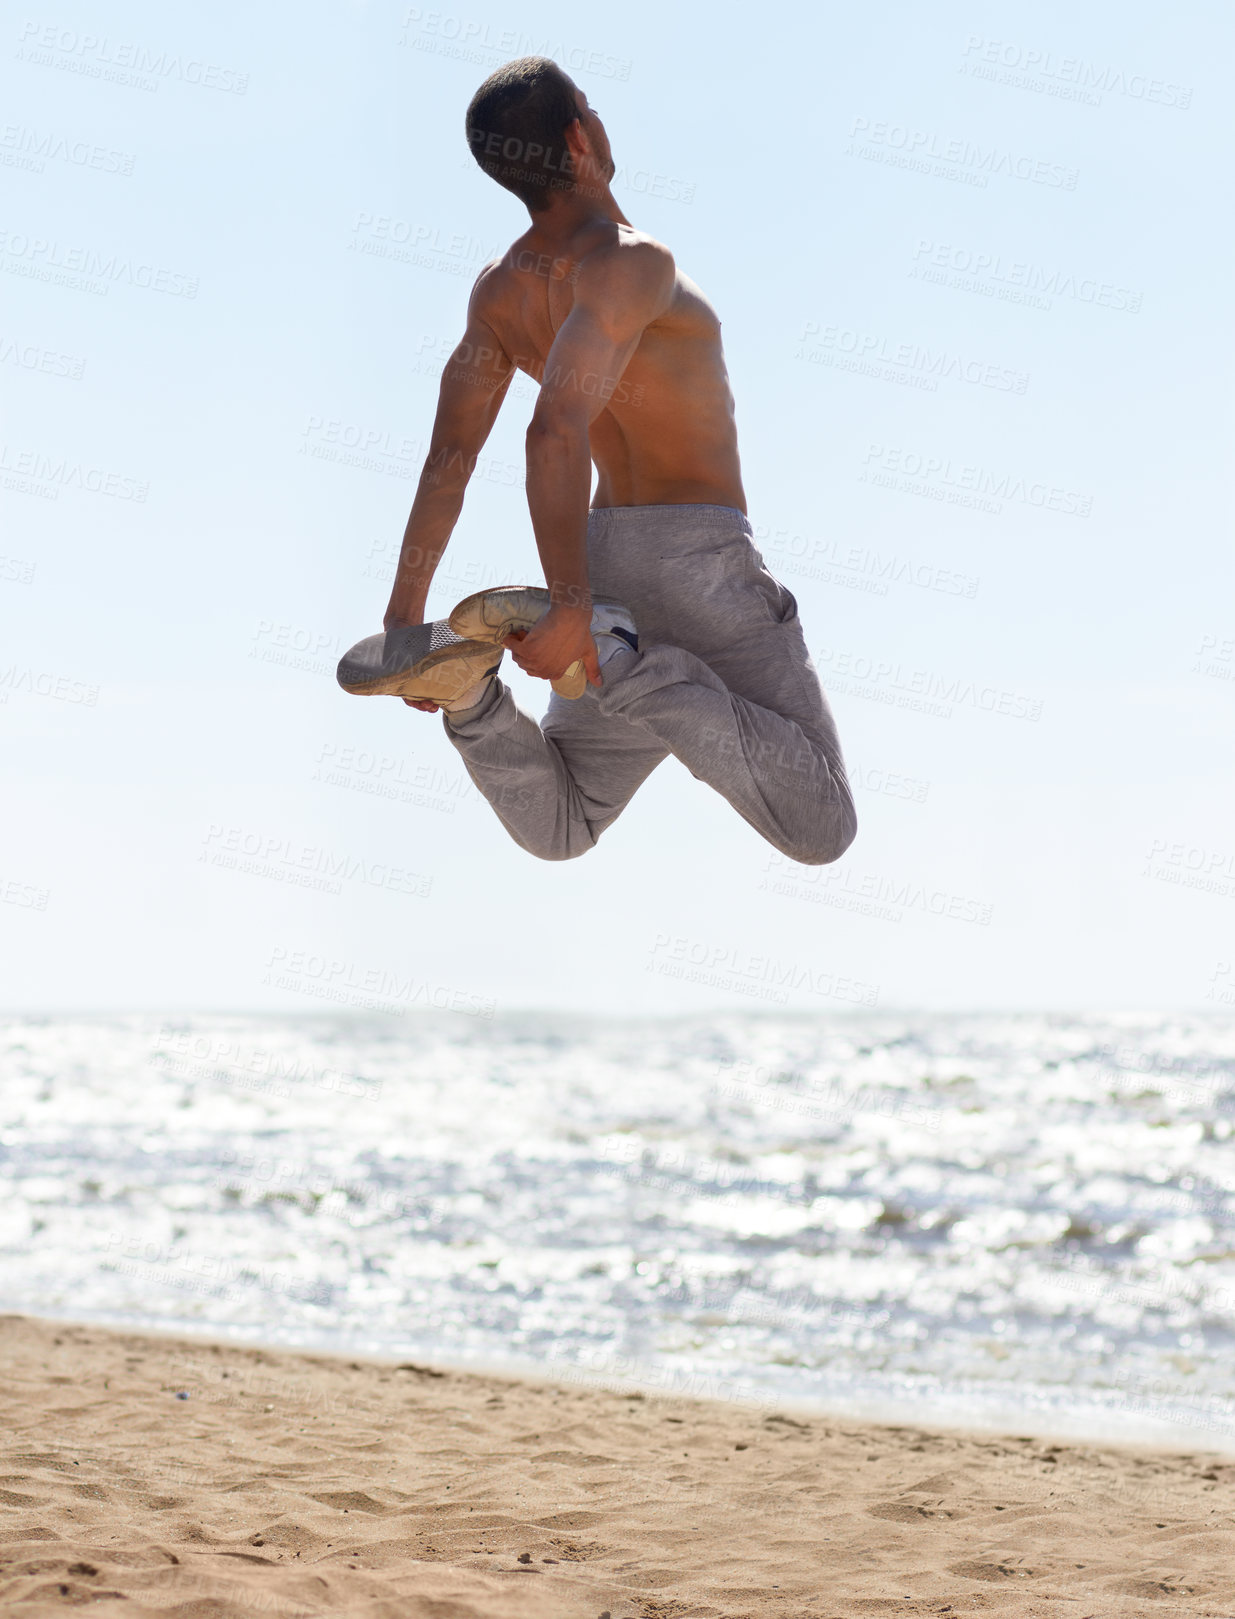 Buy stock photo An athletic young man practicing parkour on the beach